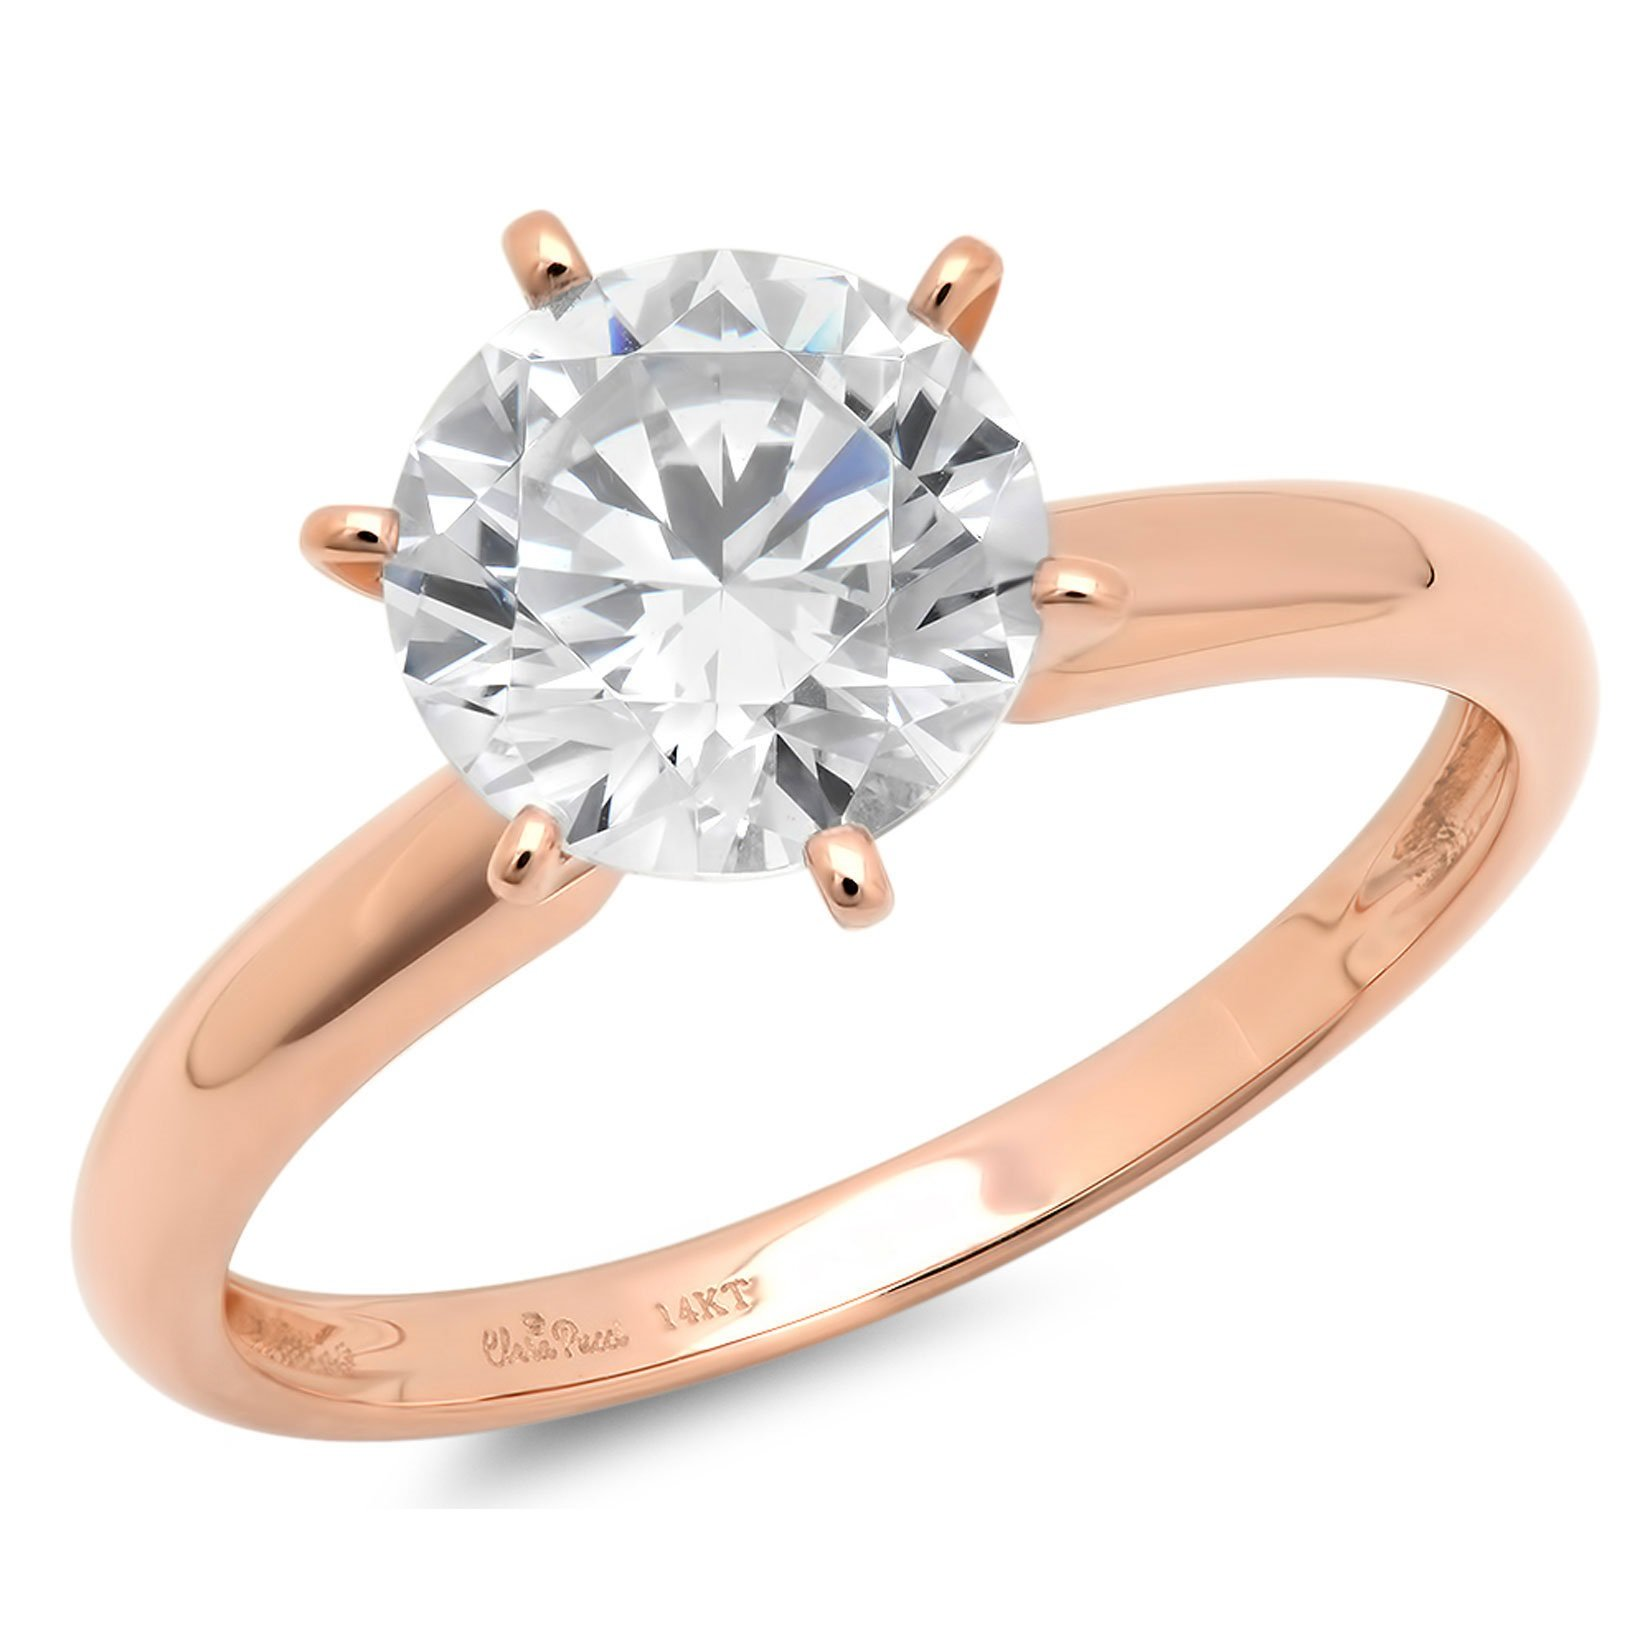 0.9ct Round Brilliant Cut Classic Wedding Statement Anniversary Designer Bridal Solitaire Engagement Promise Ring Solid 14k Rose Gold, Clara Pucci, 6.25 by Clara Pucci